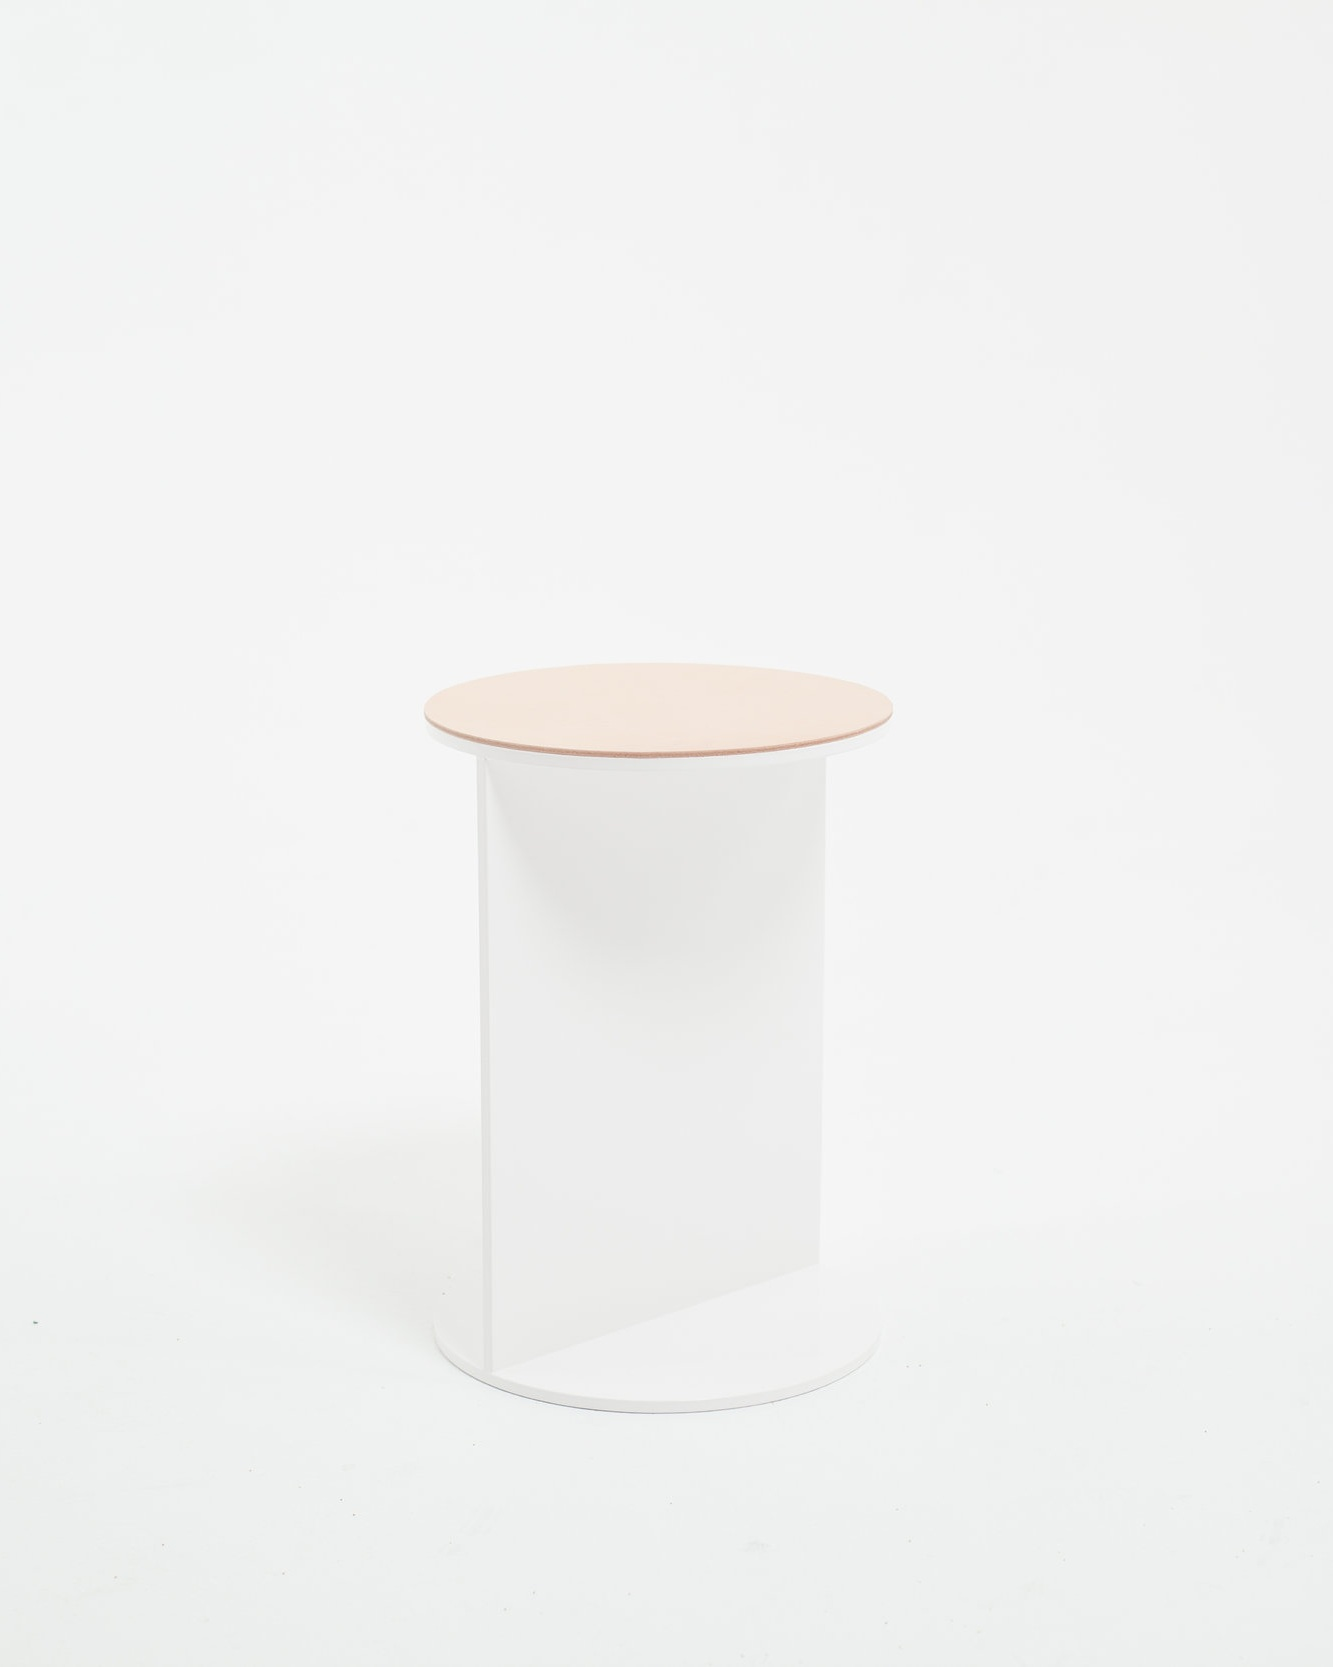 Thom+Fougere+Cafe+Stool